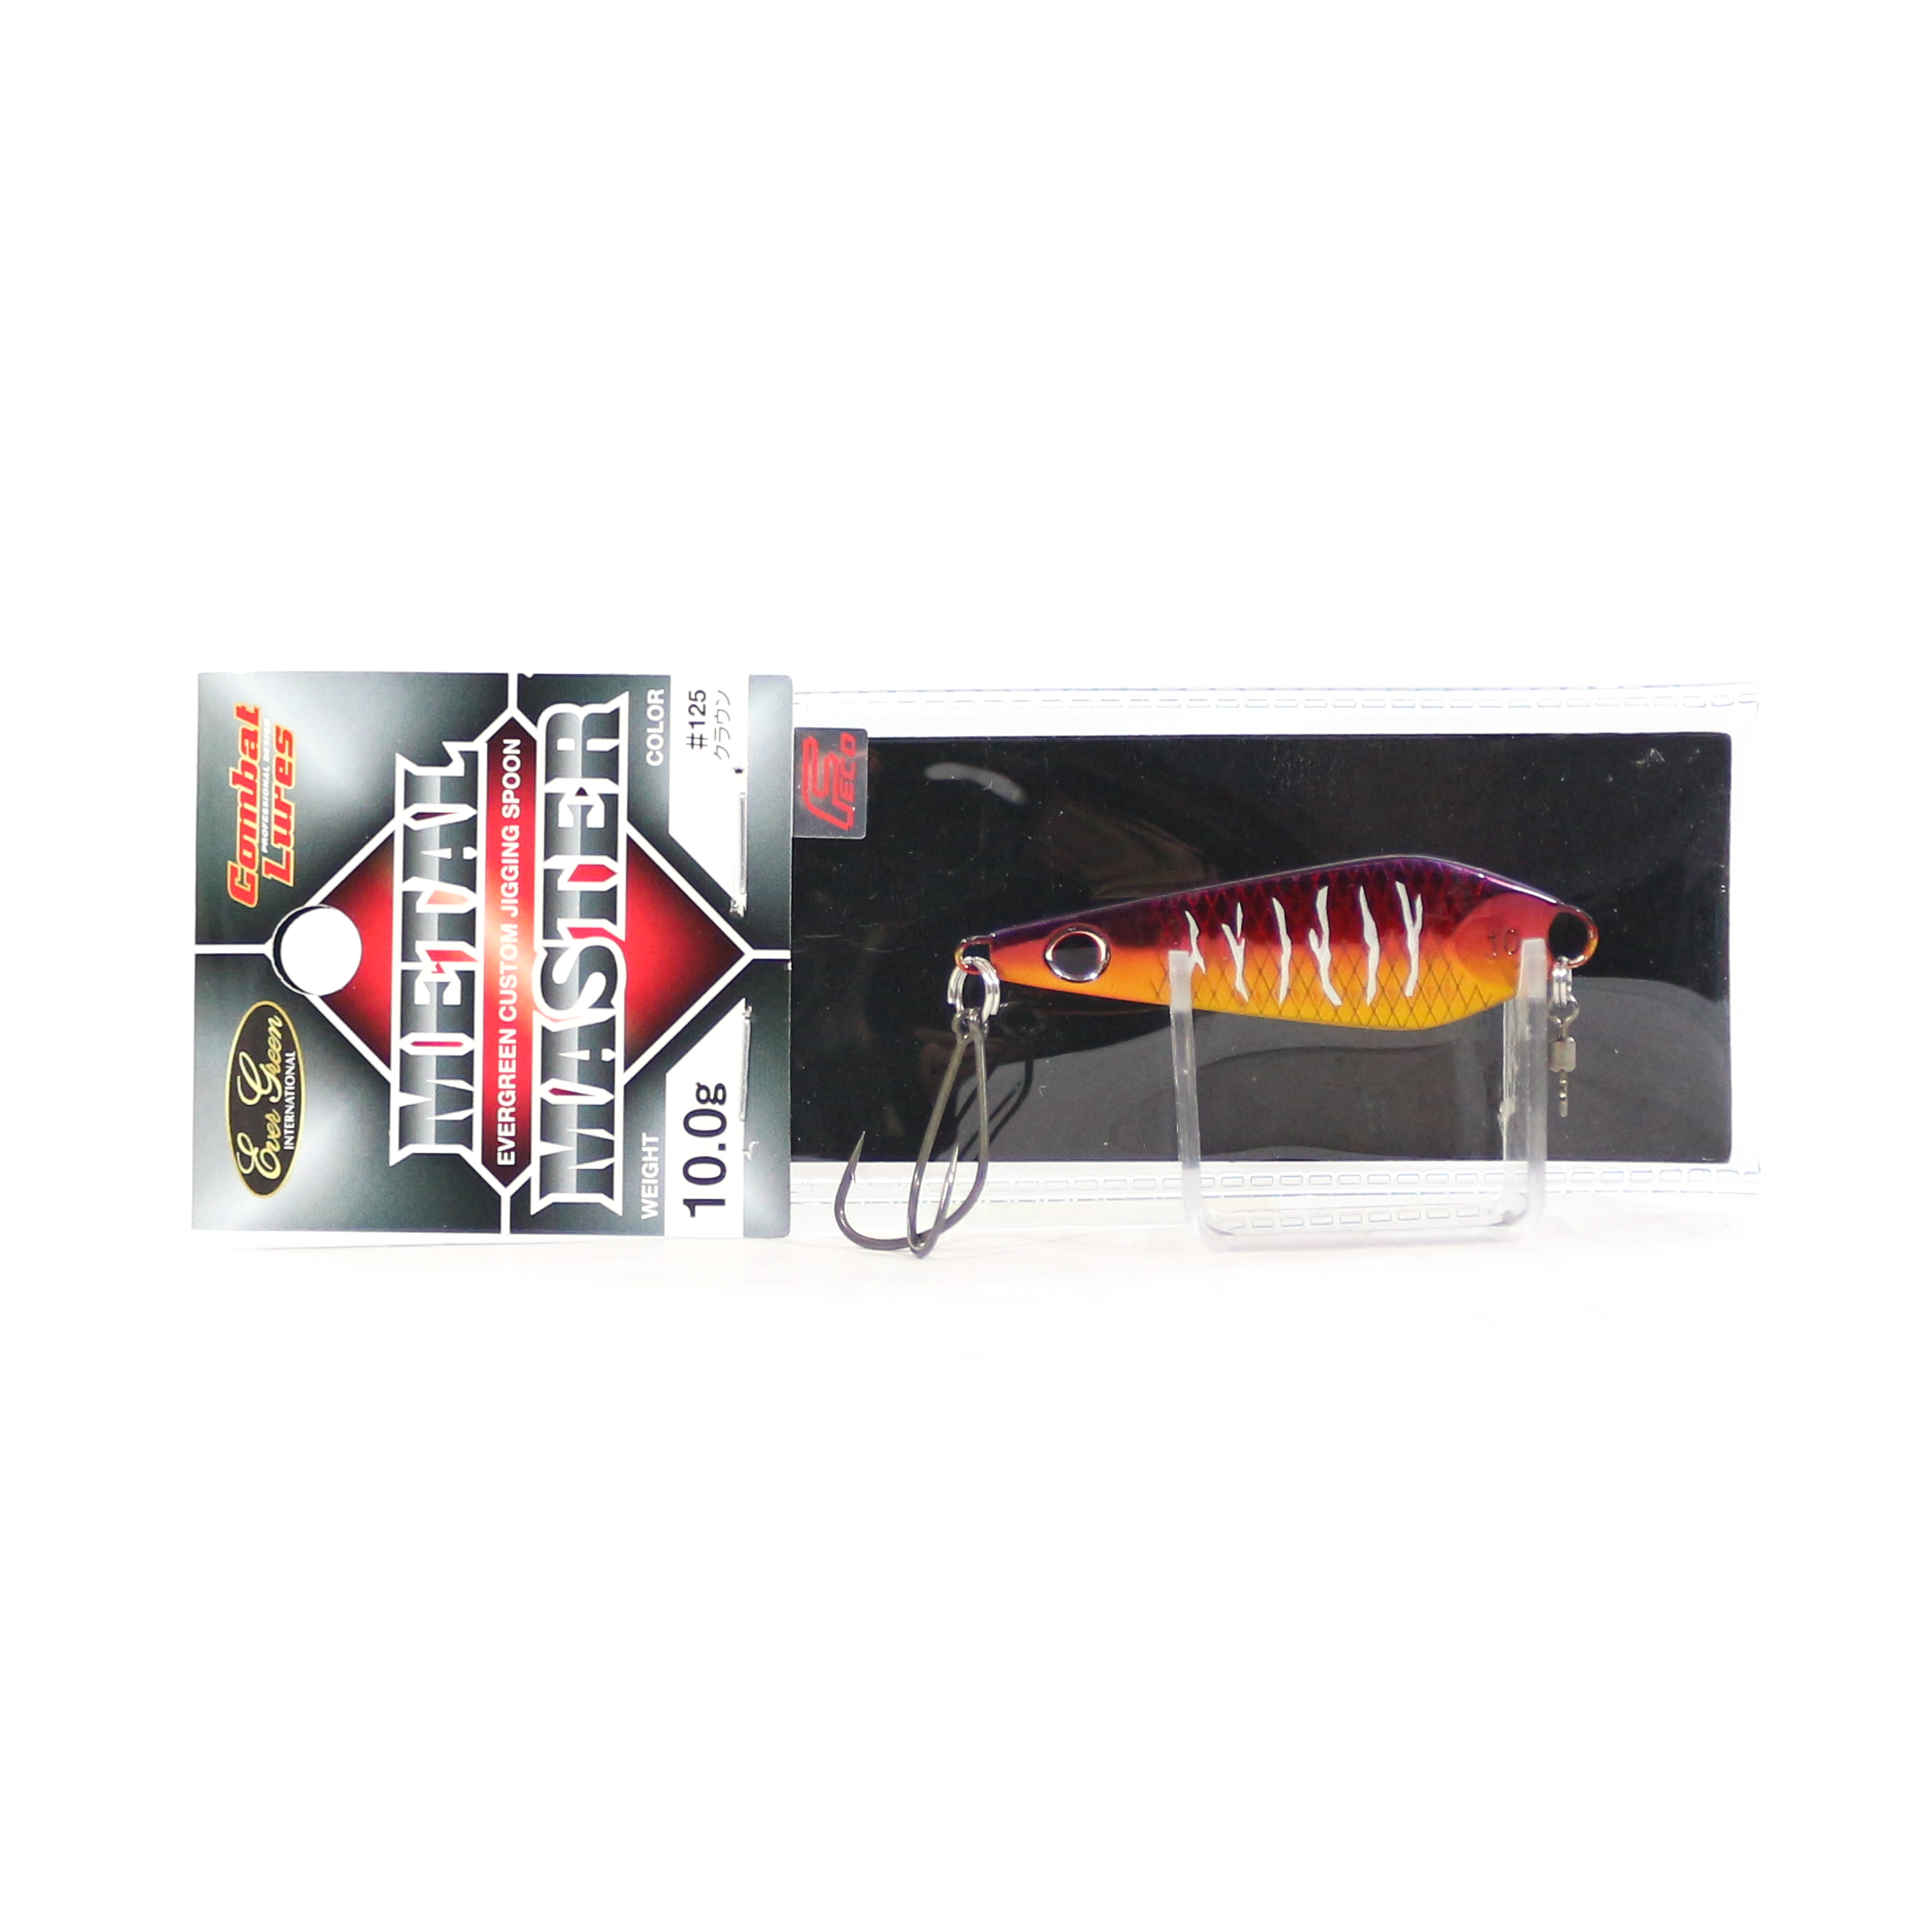 Evergreen Metal Master Custom Jigging Spoon 10 grams 19 (5959)